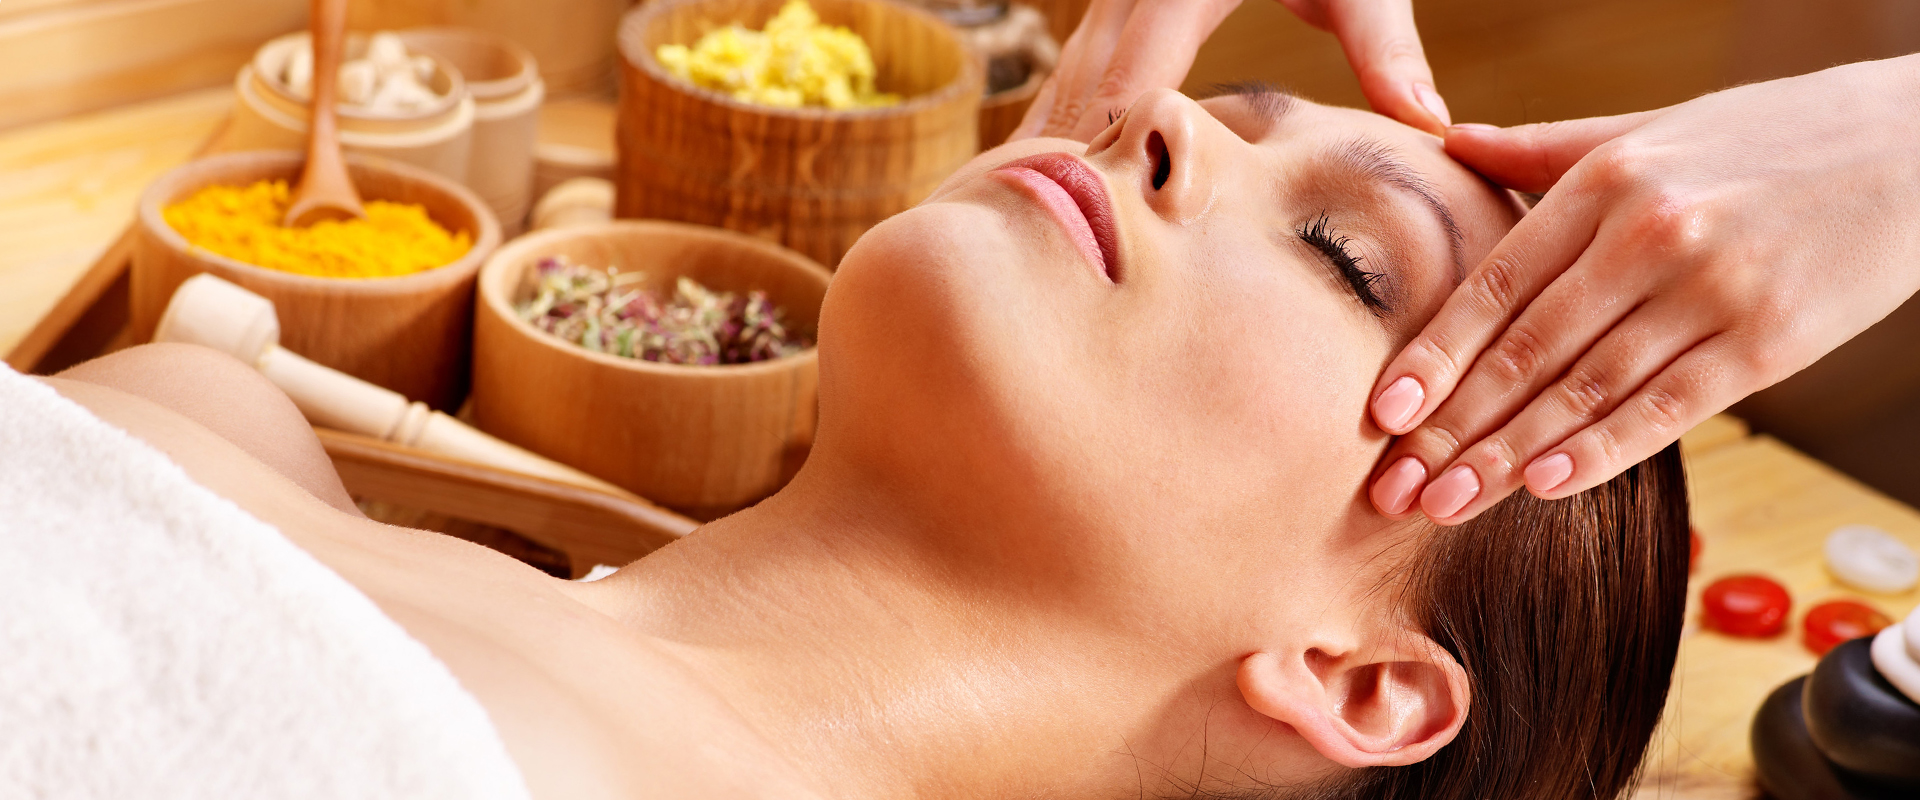 the-ranch-fitness-spa-facial